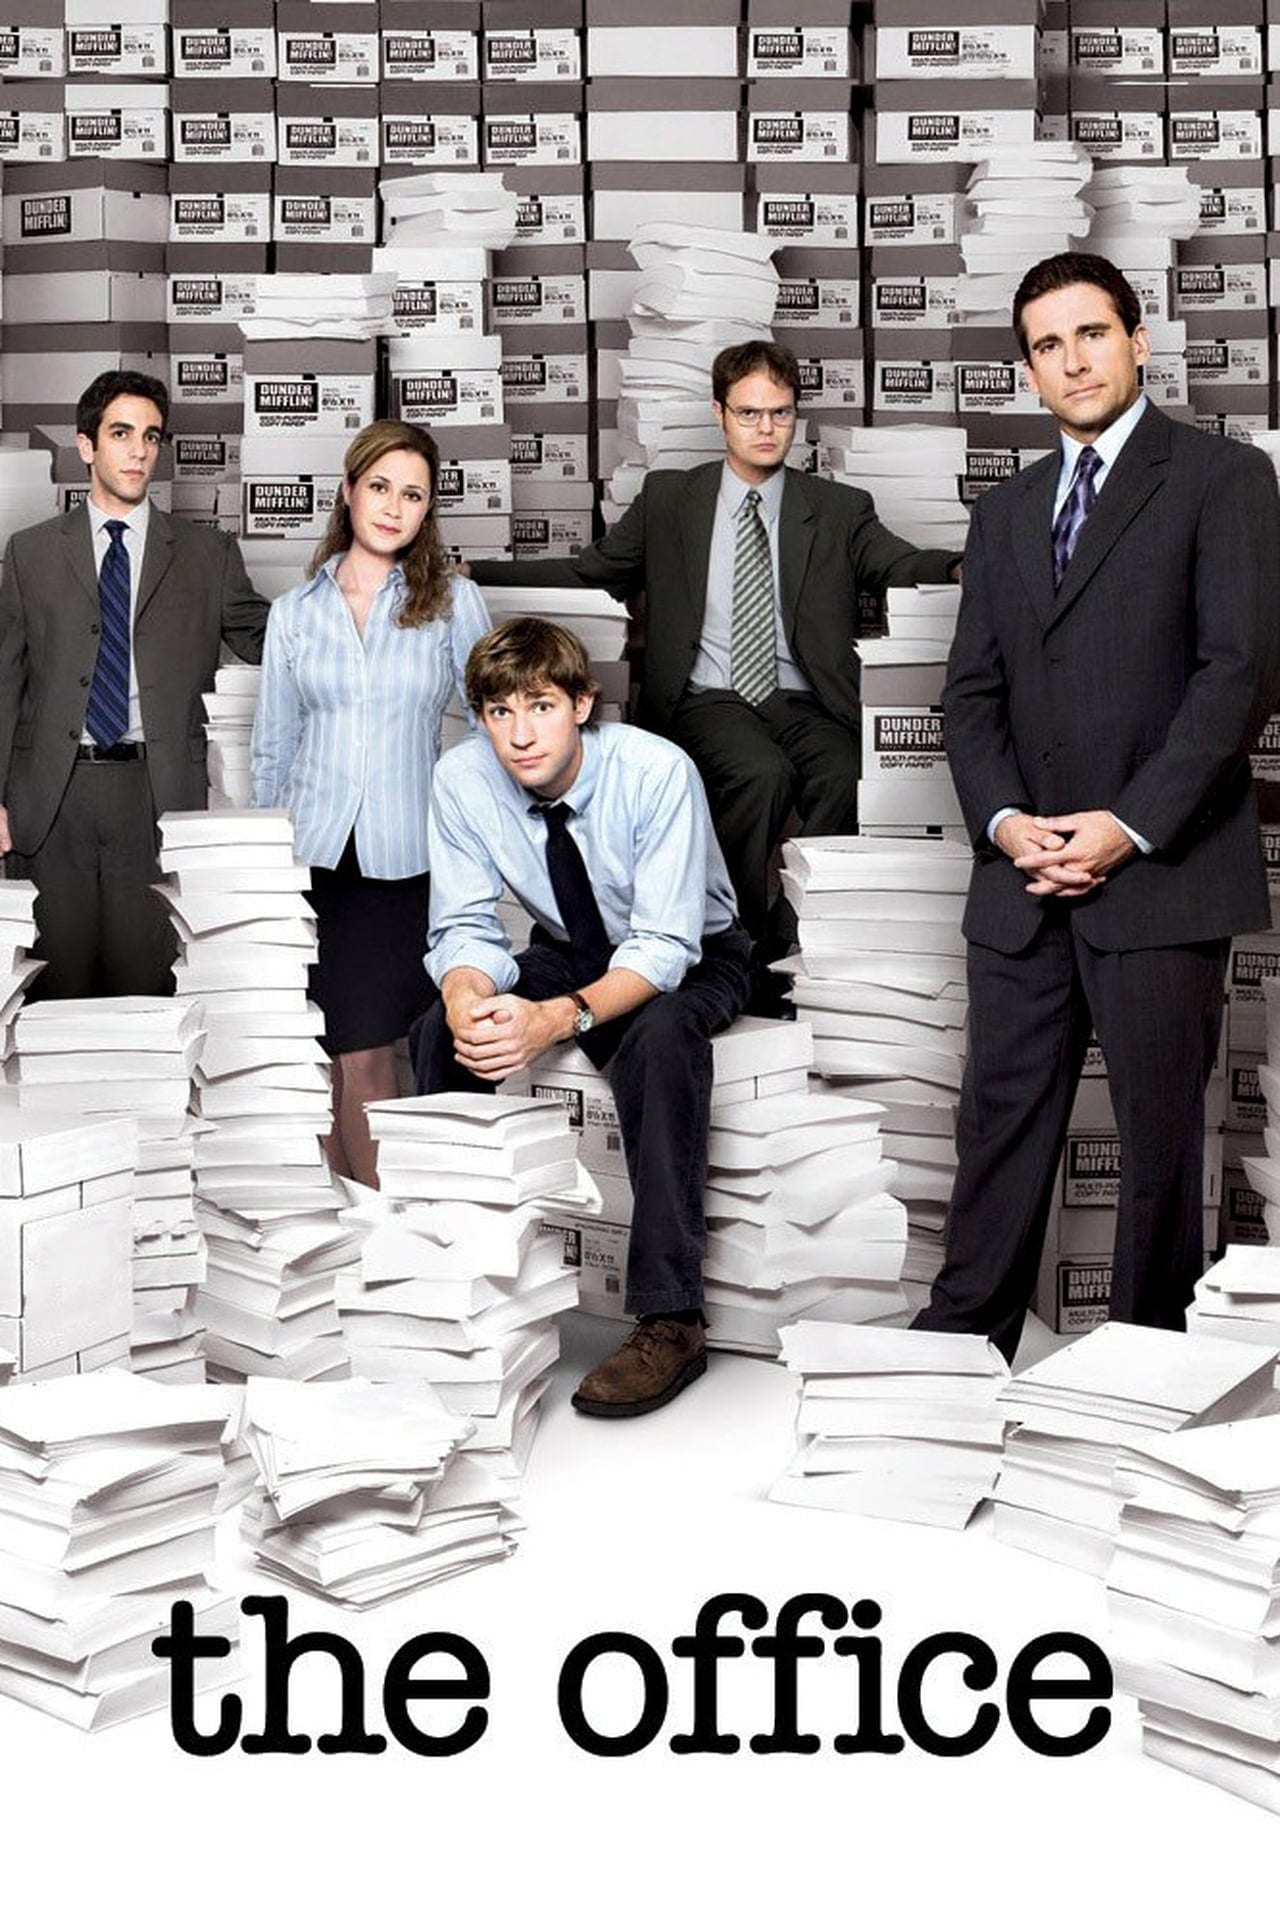 Image of The Office promotional material. The Office is on the High Five Events binge-worthy show recommendation list.